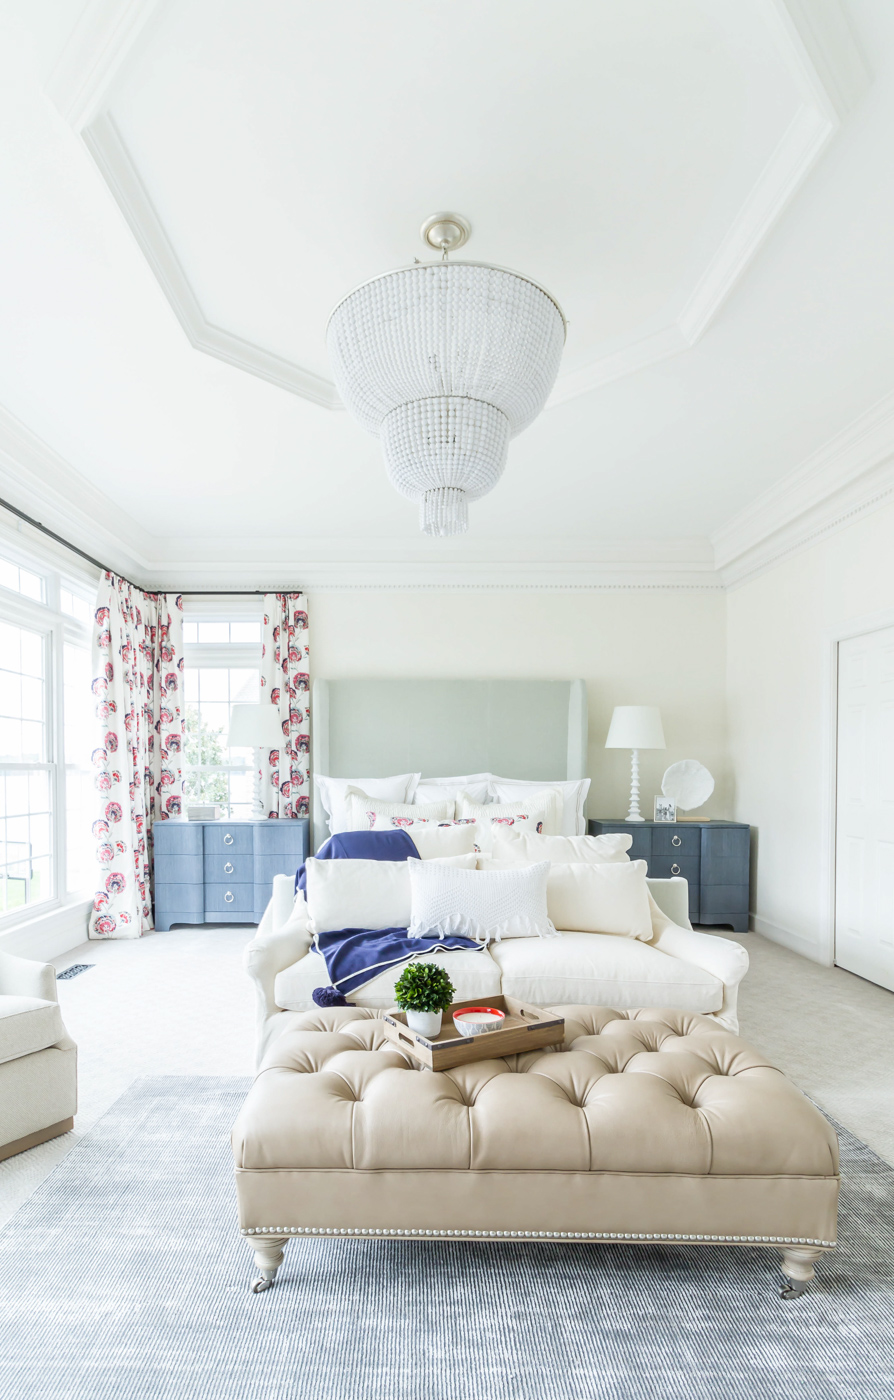 Eclectic Home Tour - love this huge master bedroom with blue nightstands and room for a seating area #masterbedroom #bedroom #bedroomdecor